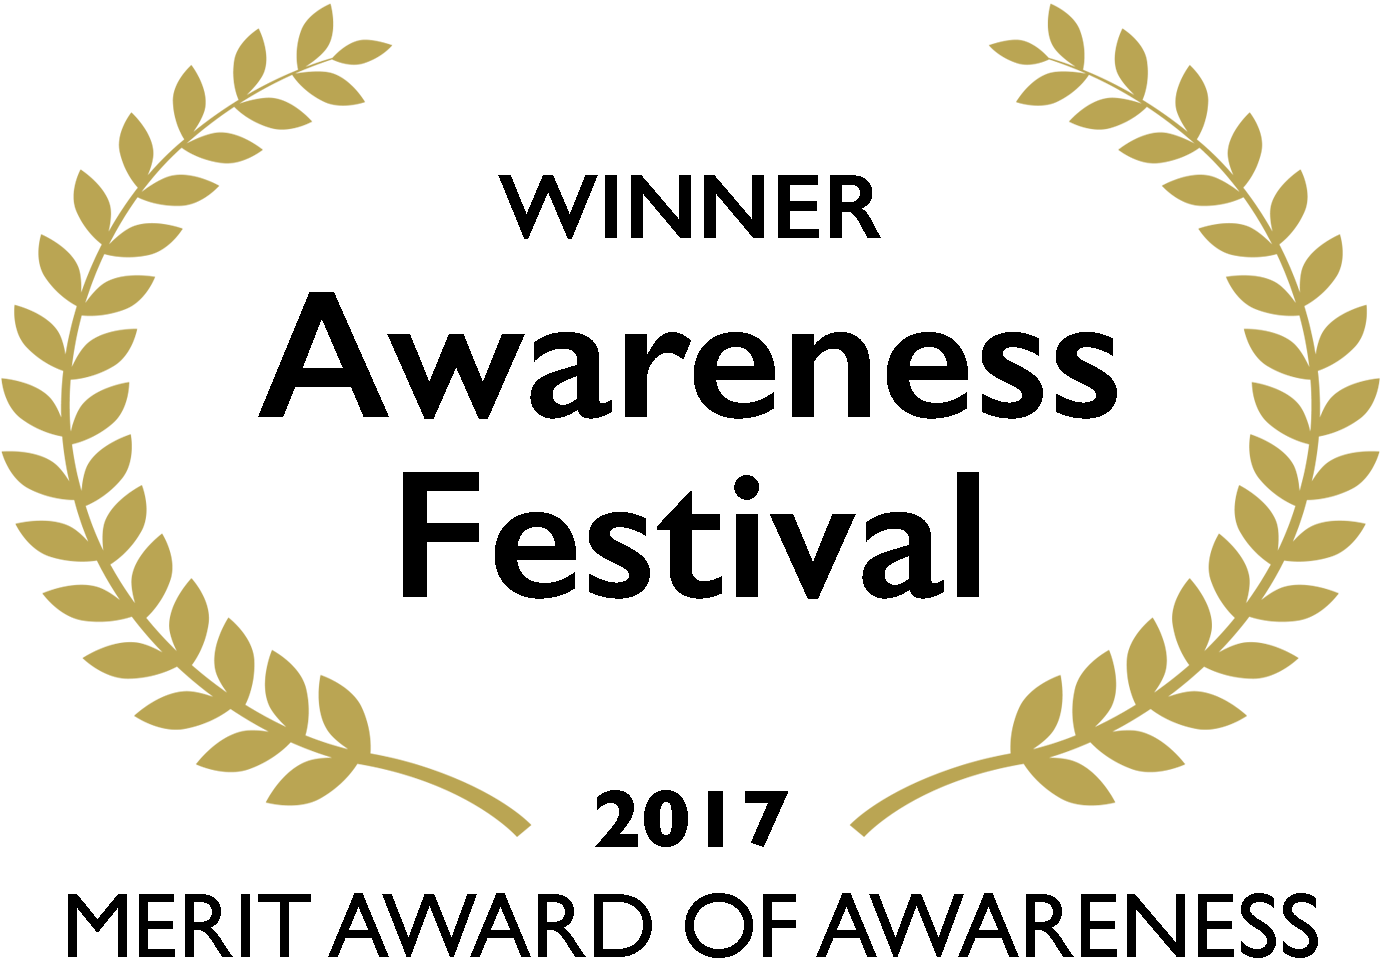 Sofia Wellman - Whats Love Got To Do With It - Film by Sofia Wellman - Awareness Film Festival - Winner - Merit Award Of Awareness - 2017